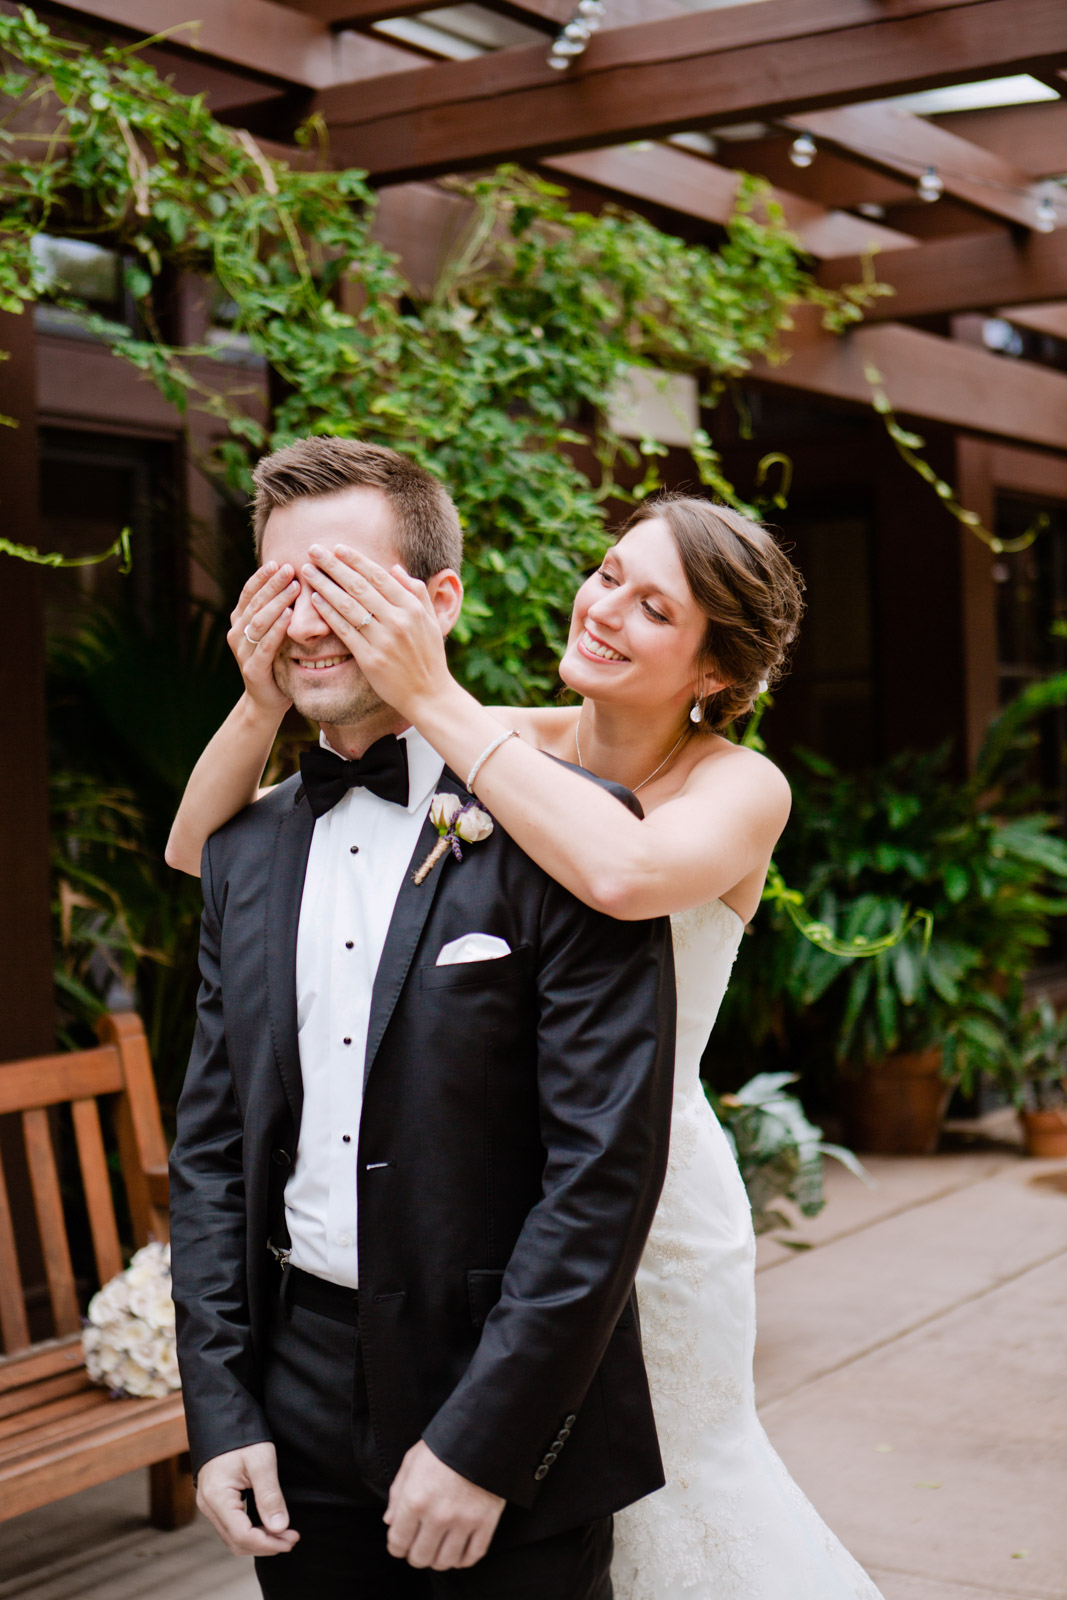 a bride covers her grooms eyes before he sets eyes on her for the first look